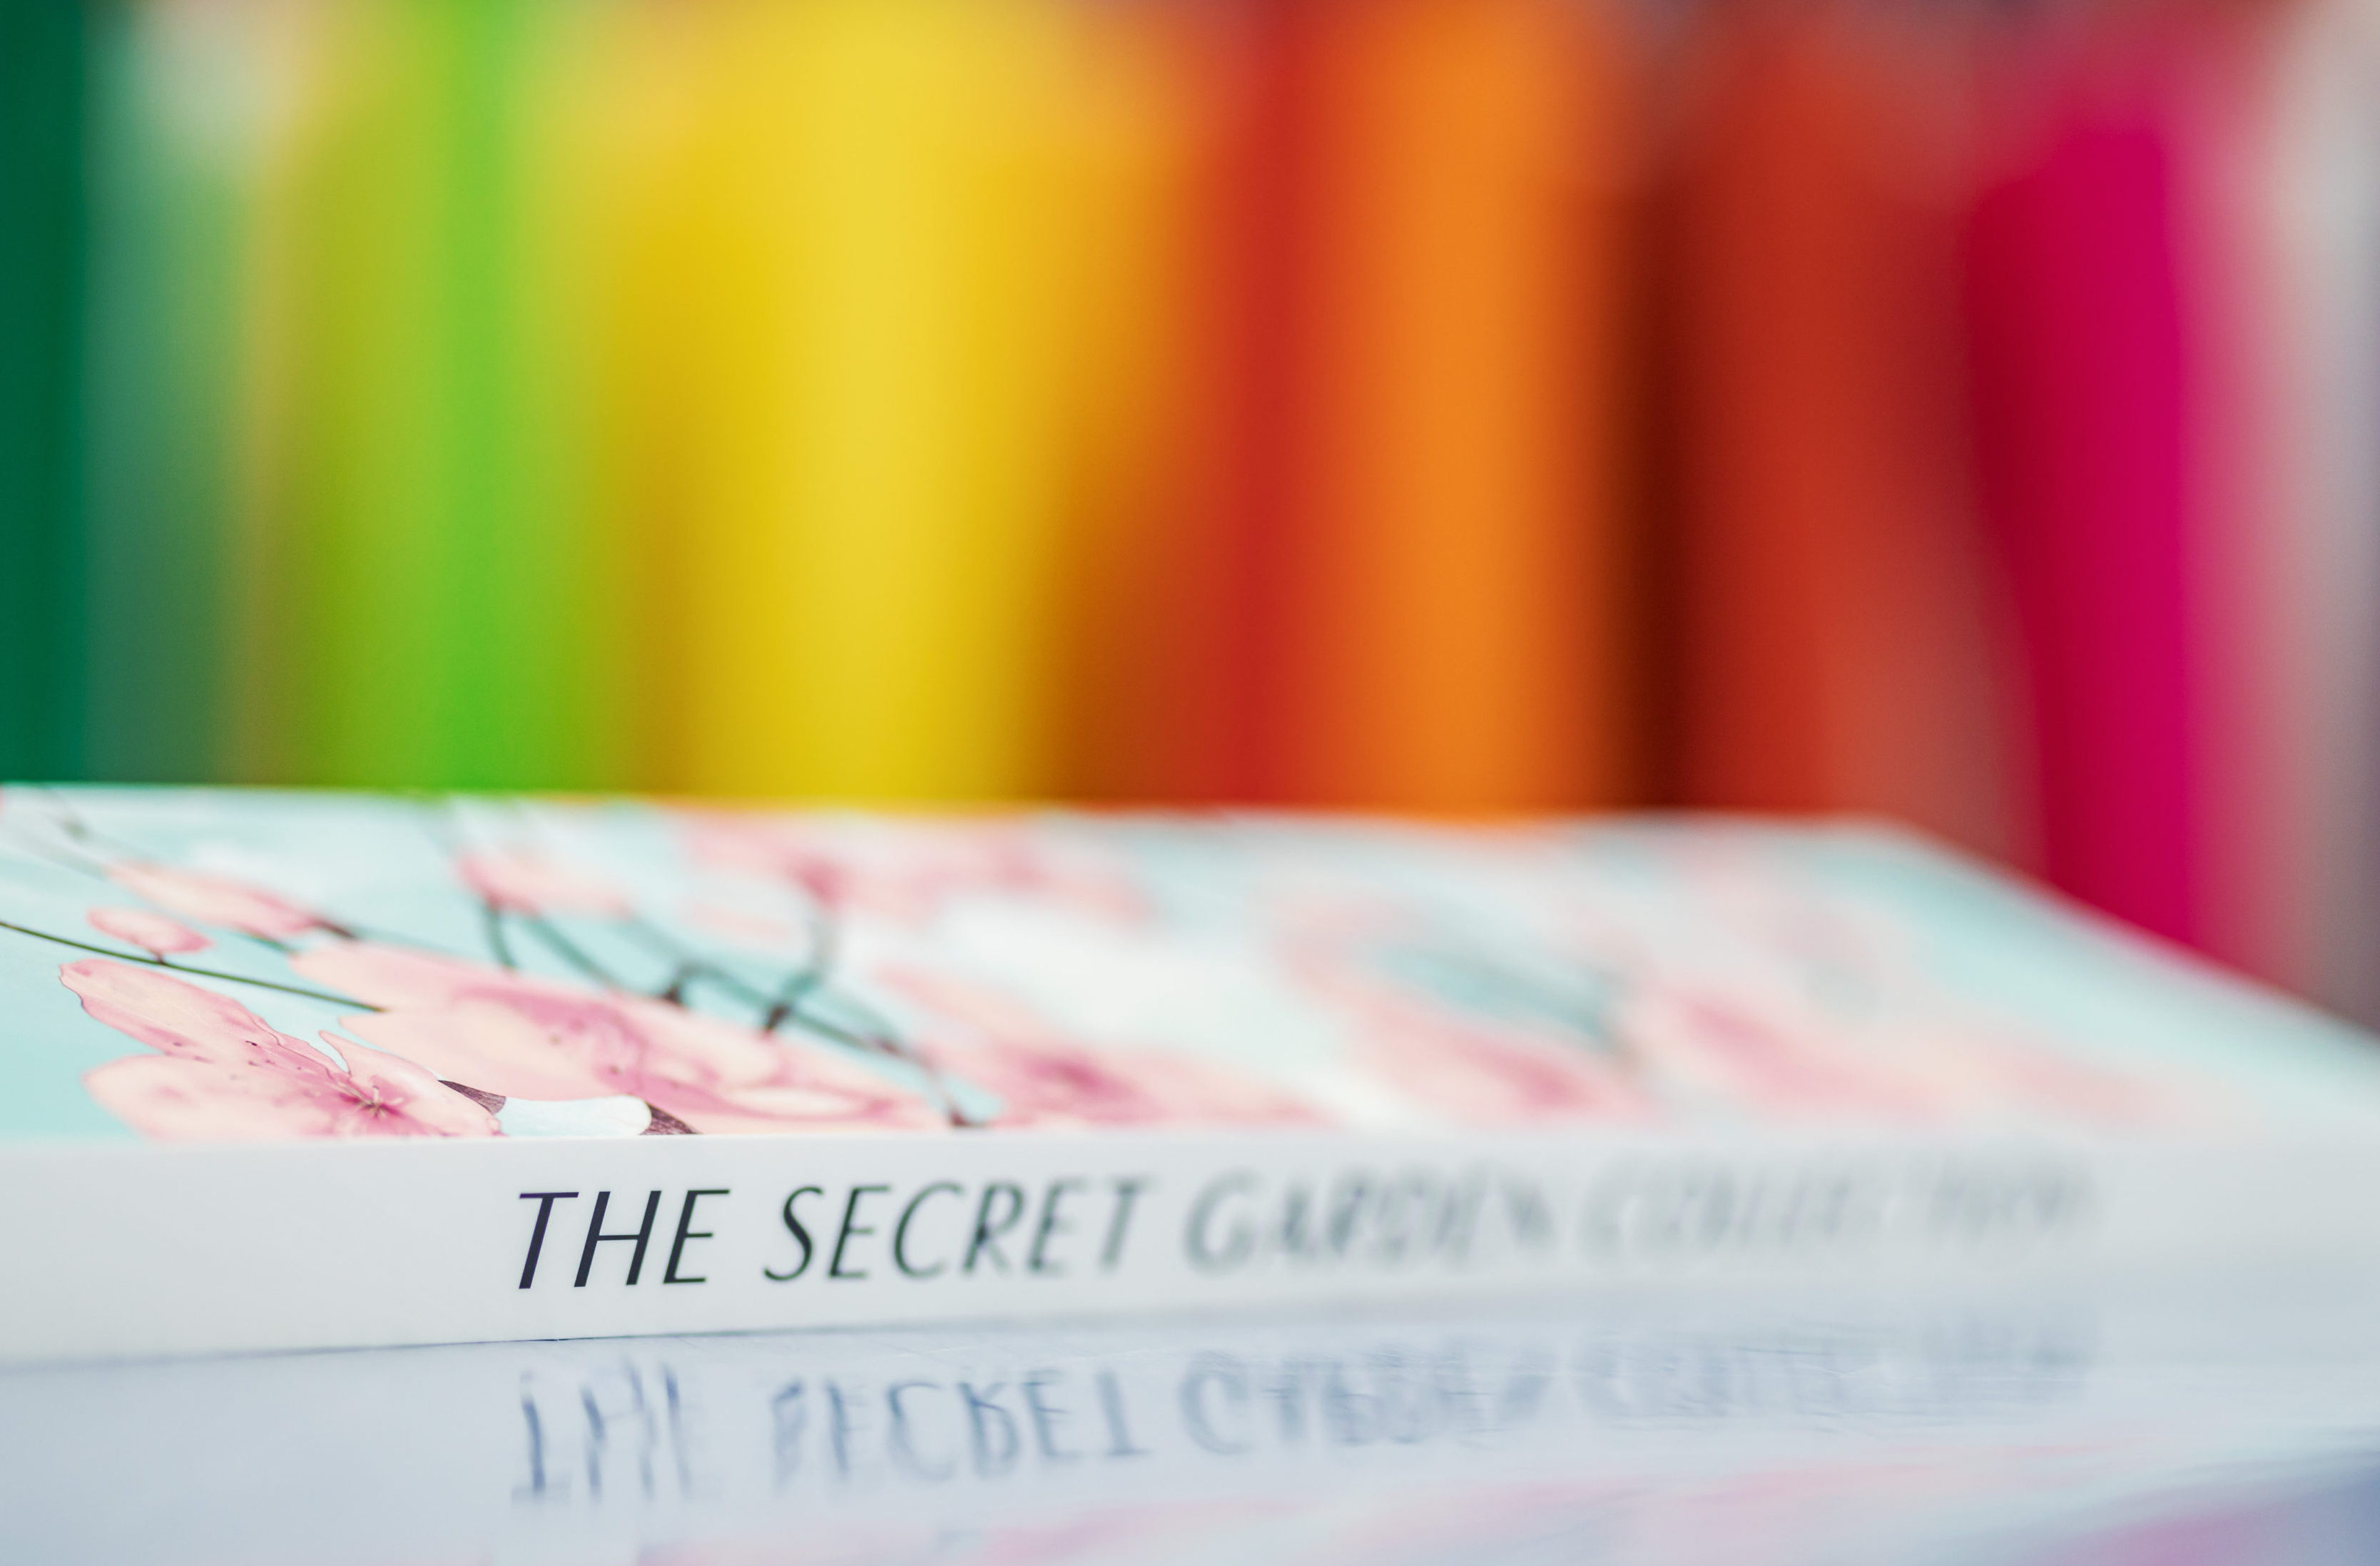 The secret garden book with colours in the background